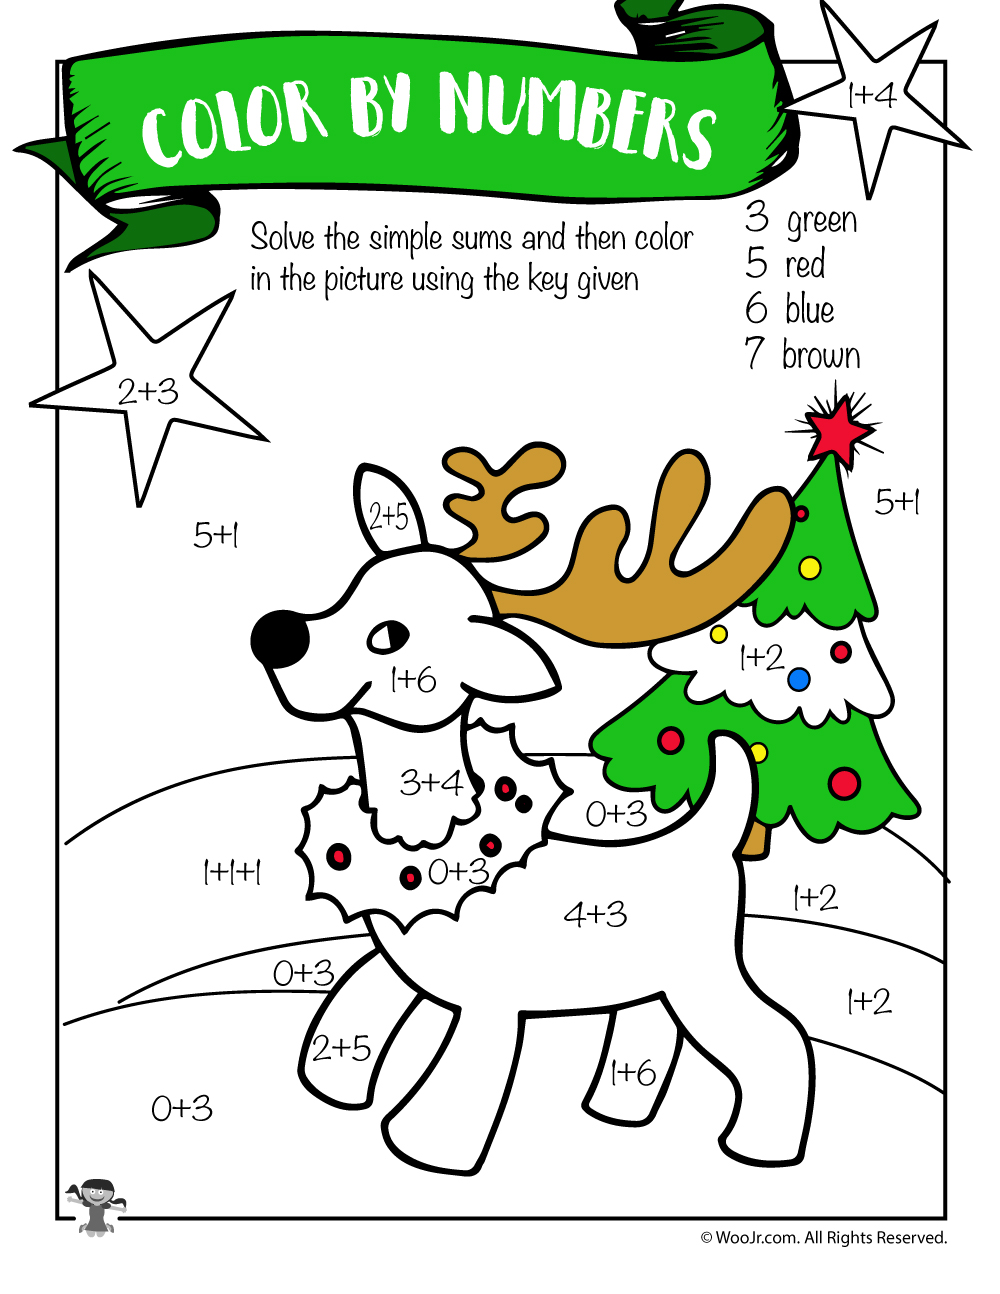 worksheet Coloring Addition Worksheets free printable christmas math worksheets pre k 1st grade 2nd reindeer addition coloring worksheet